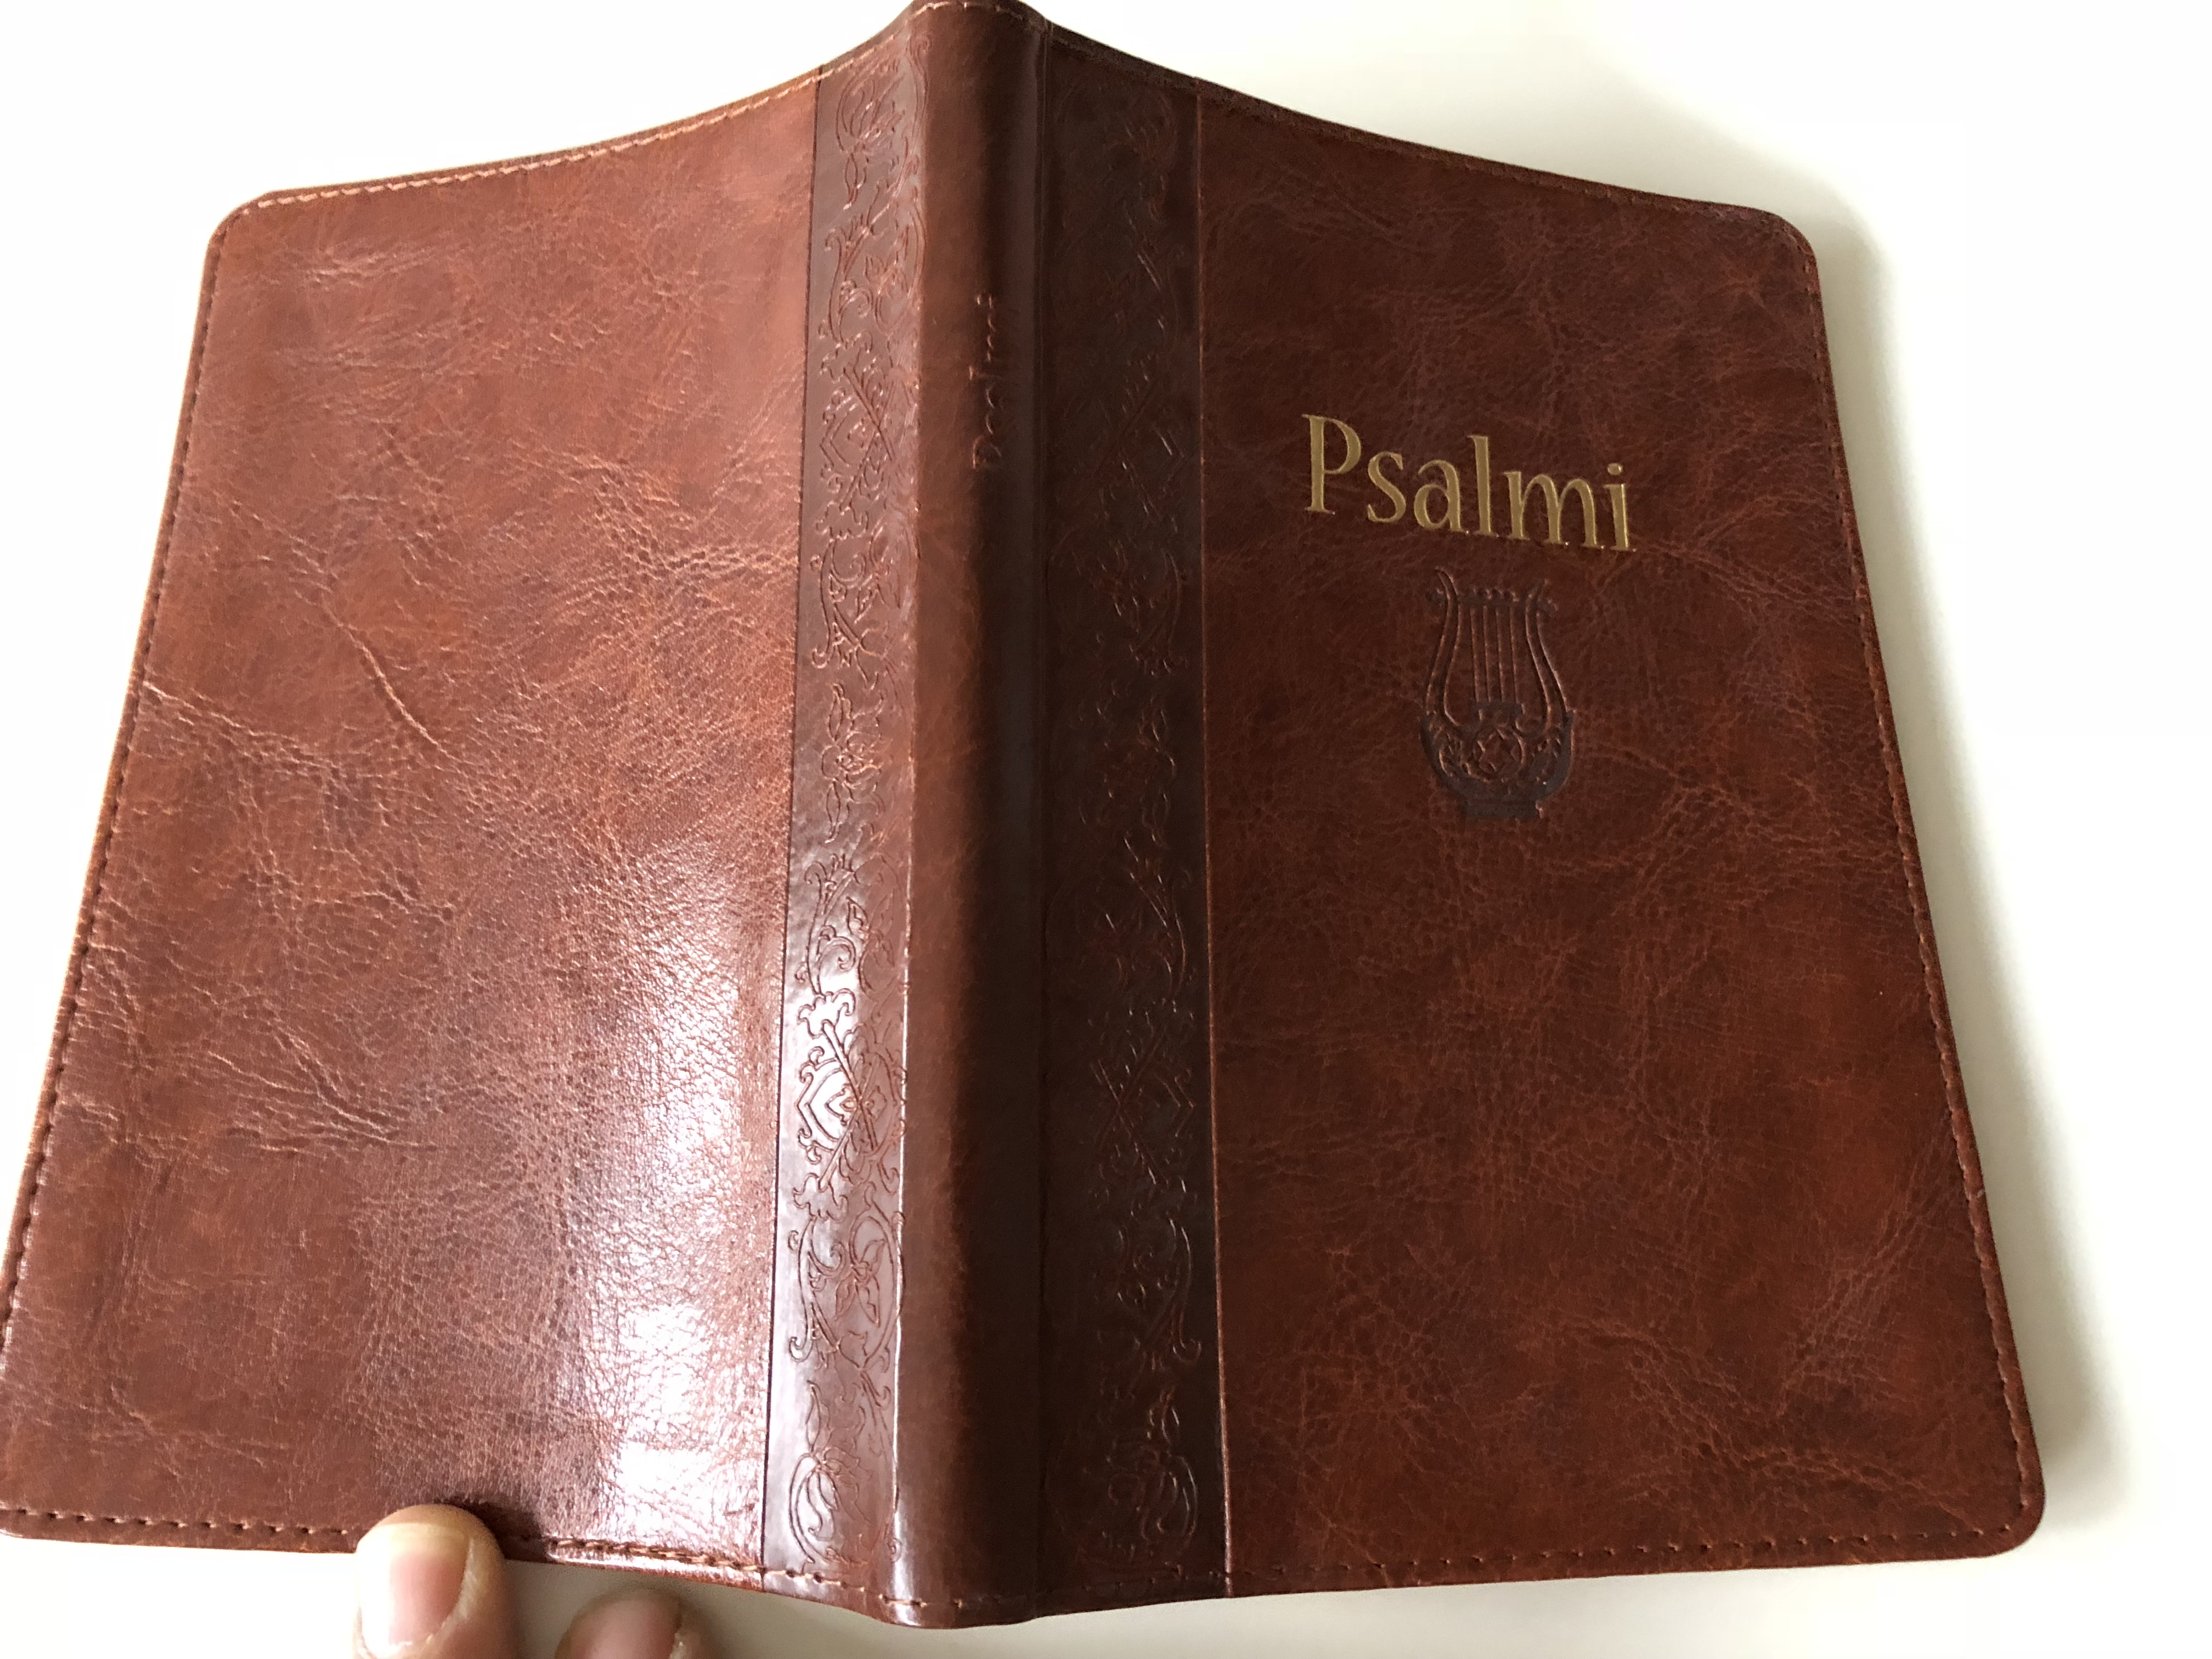 psalms-in-croatian-language-lectio-divina-and-introduction-to-the-psalms-brown-leather-bound-golden-edges-16-.jpg